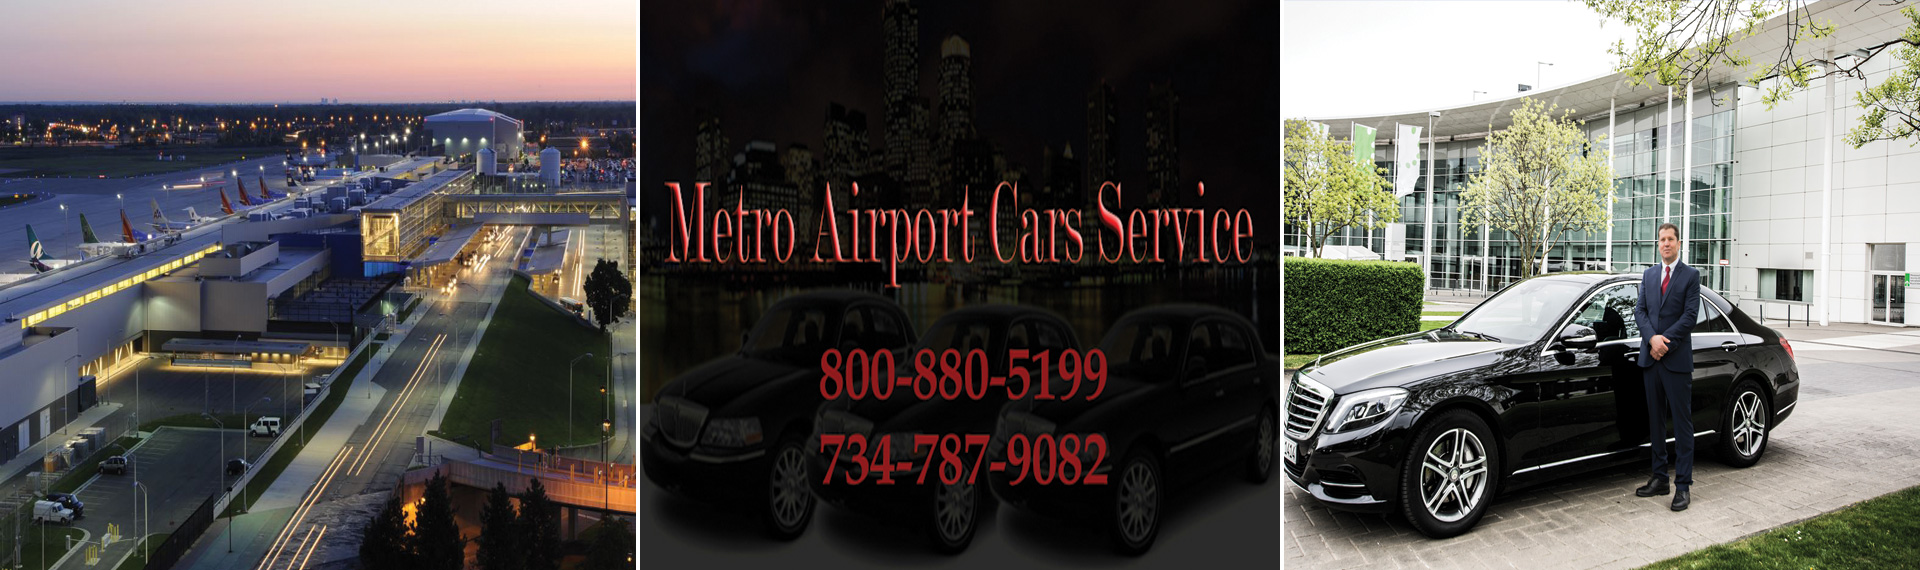 Metro Airport Cars Service West Bloomfield Township MI